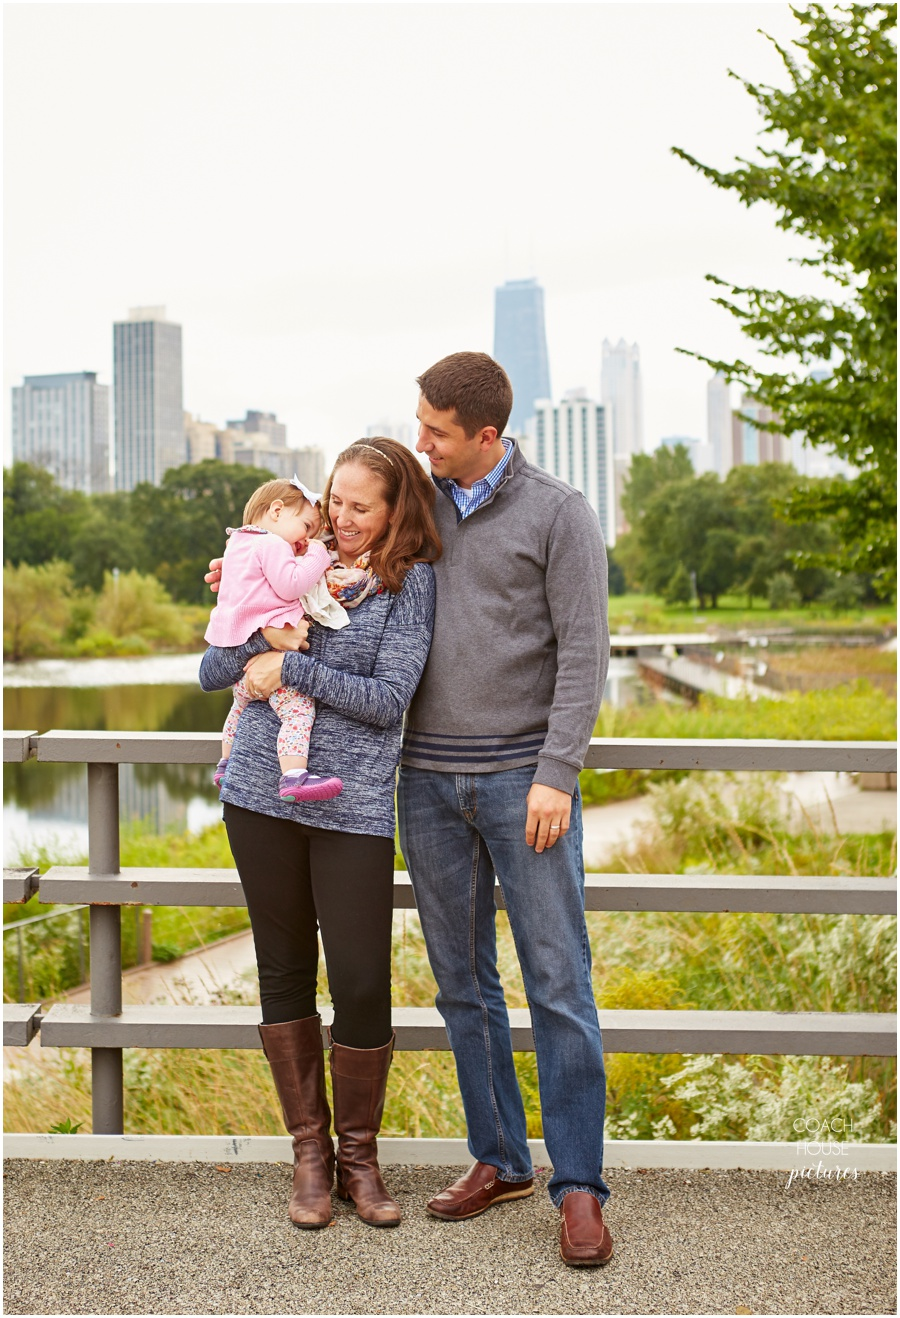 Chicago Family photographer, Coach House Pictures, Lincoln Park, South Pond, Chicago Family session, Chicago photographer, Lincoln Park family